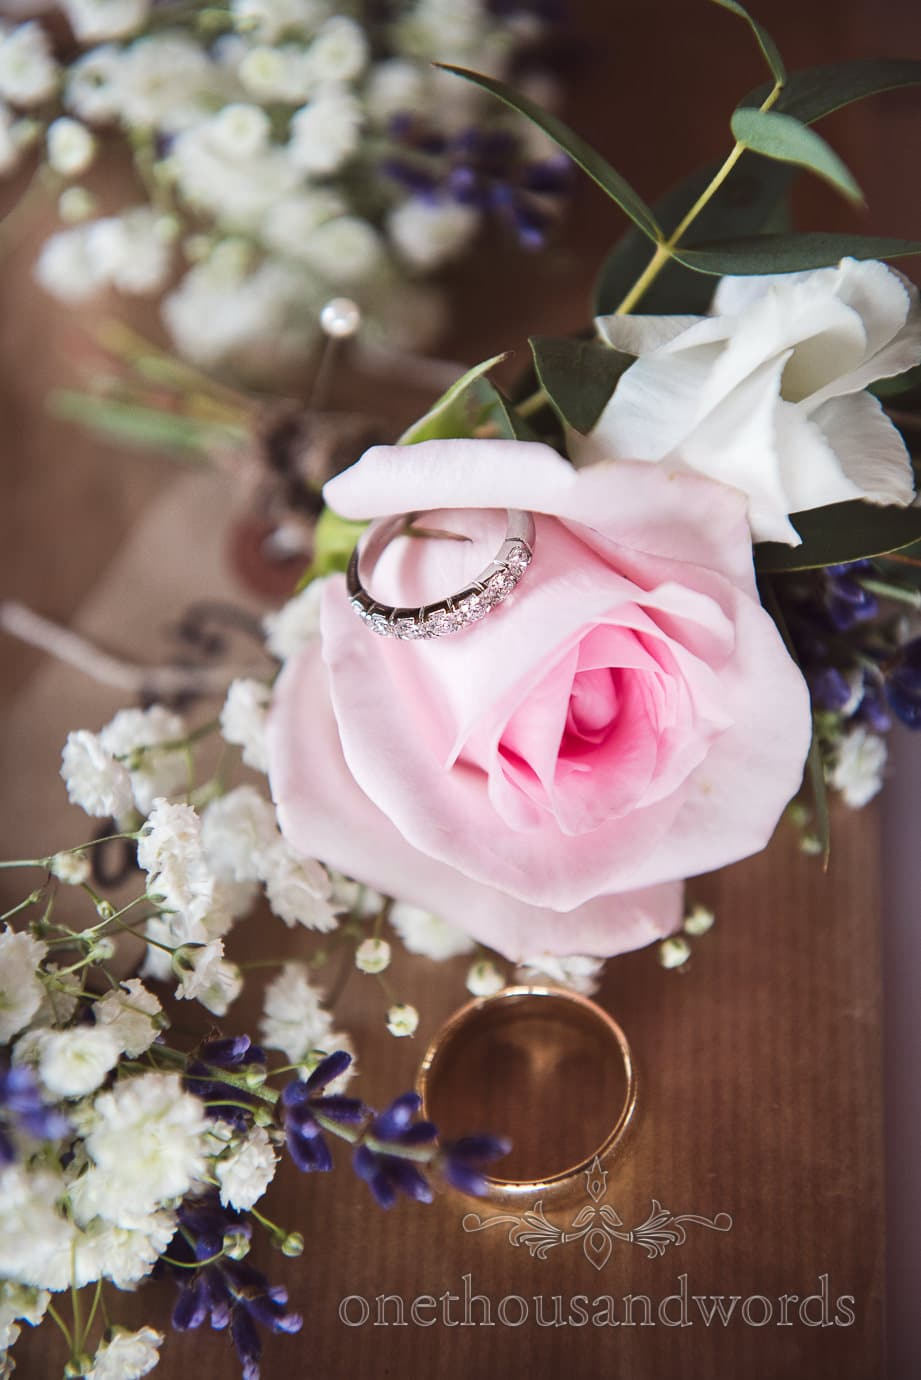 Silver diamond and gold band wedding rings with pink rose buttonhole wedding flower